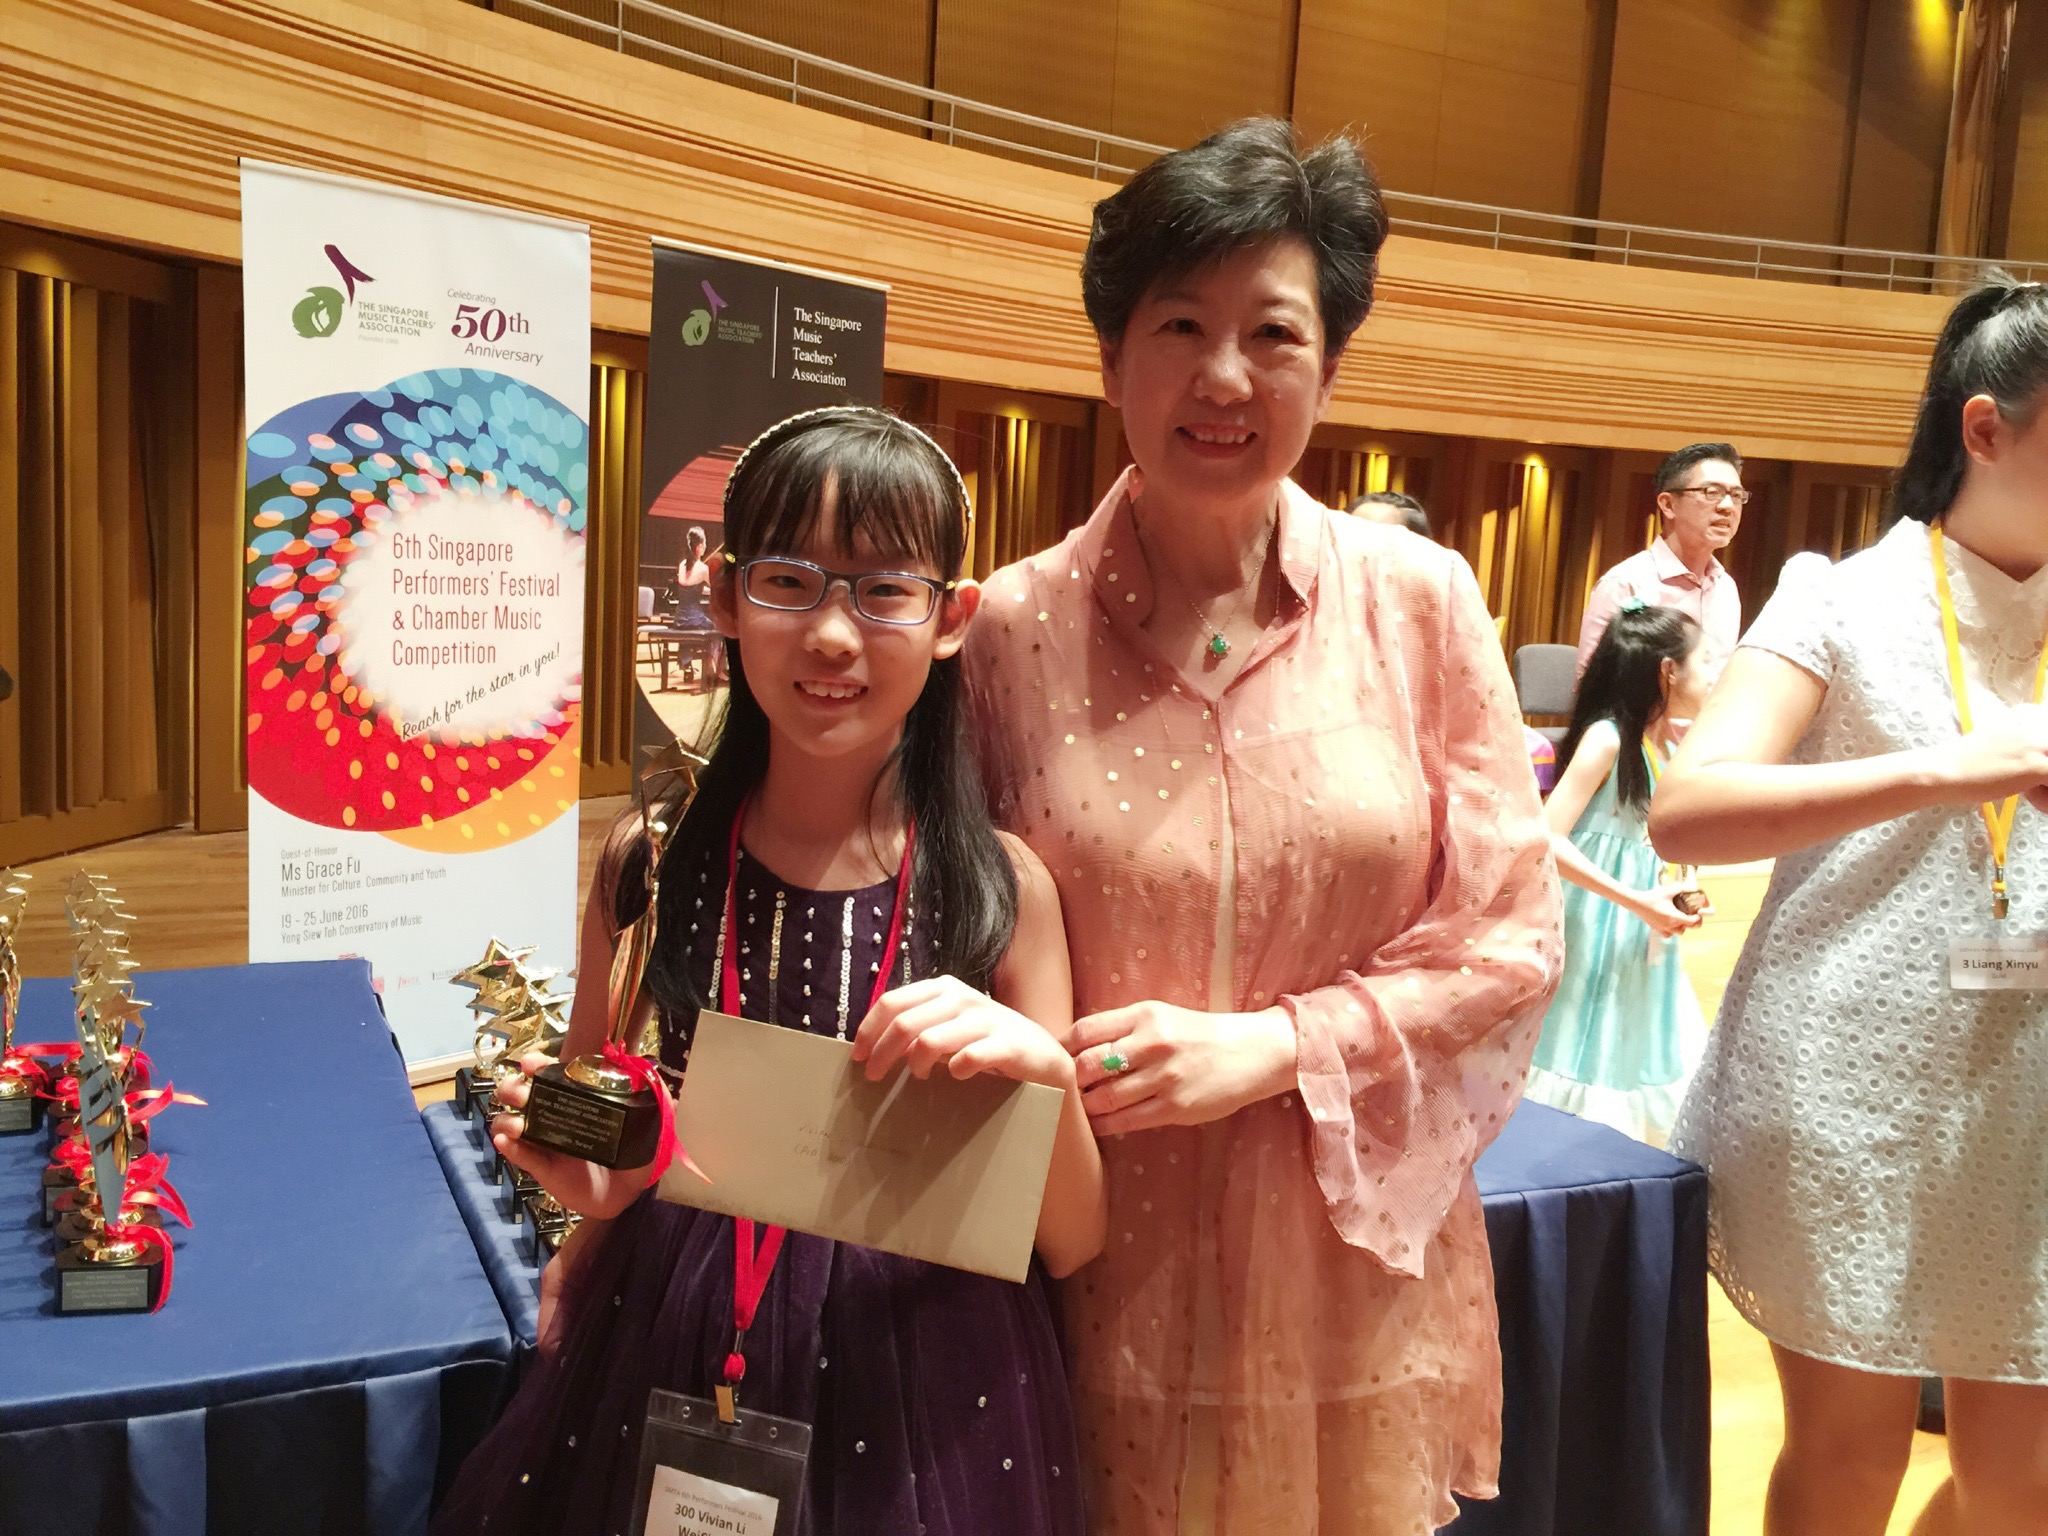 11-year-old Platinum Award winner, Vivian Li Weichang (left), with Festival adjudicator, Toh Chee Hung.